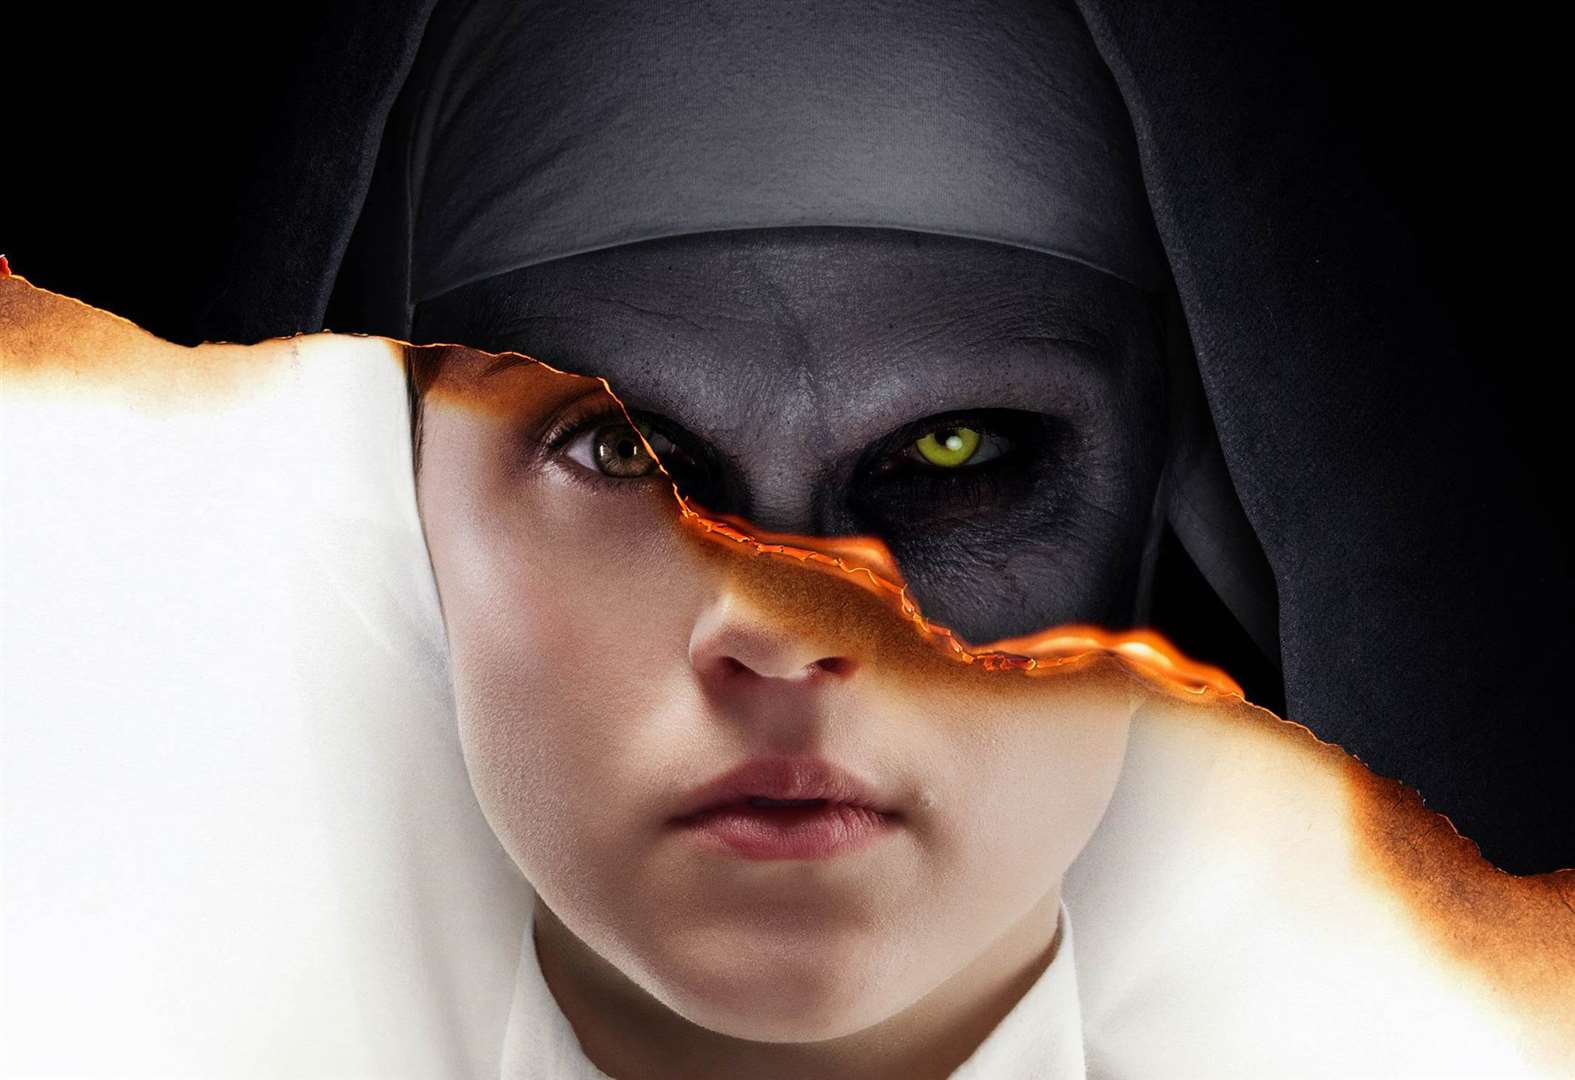 The Nun is the new number one film at TVL Allstar Video